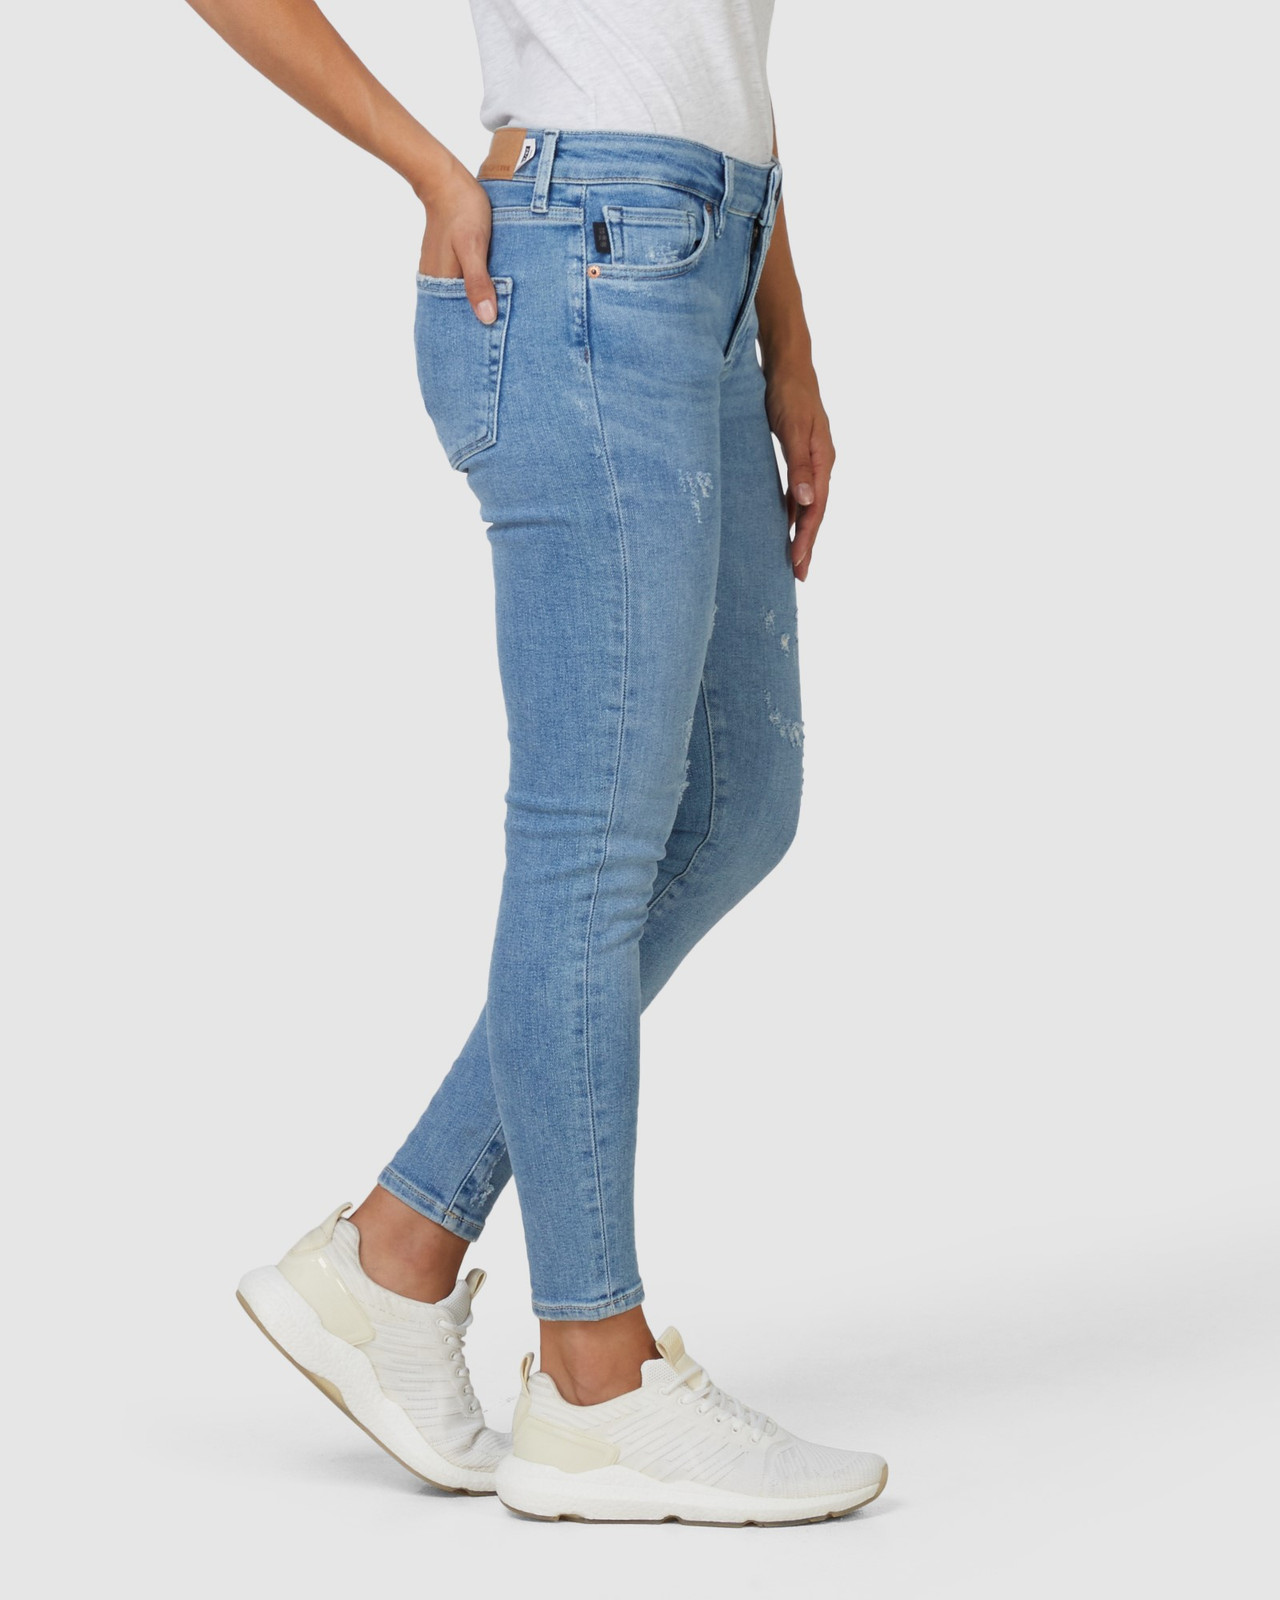 Superdry Womens MID RISE SKINNY Blue Skinny Jeans 5